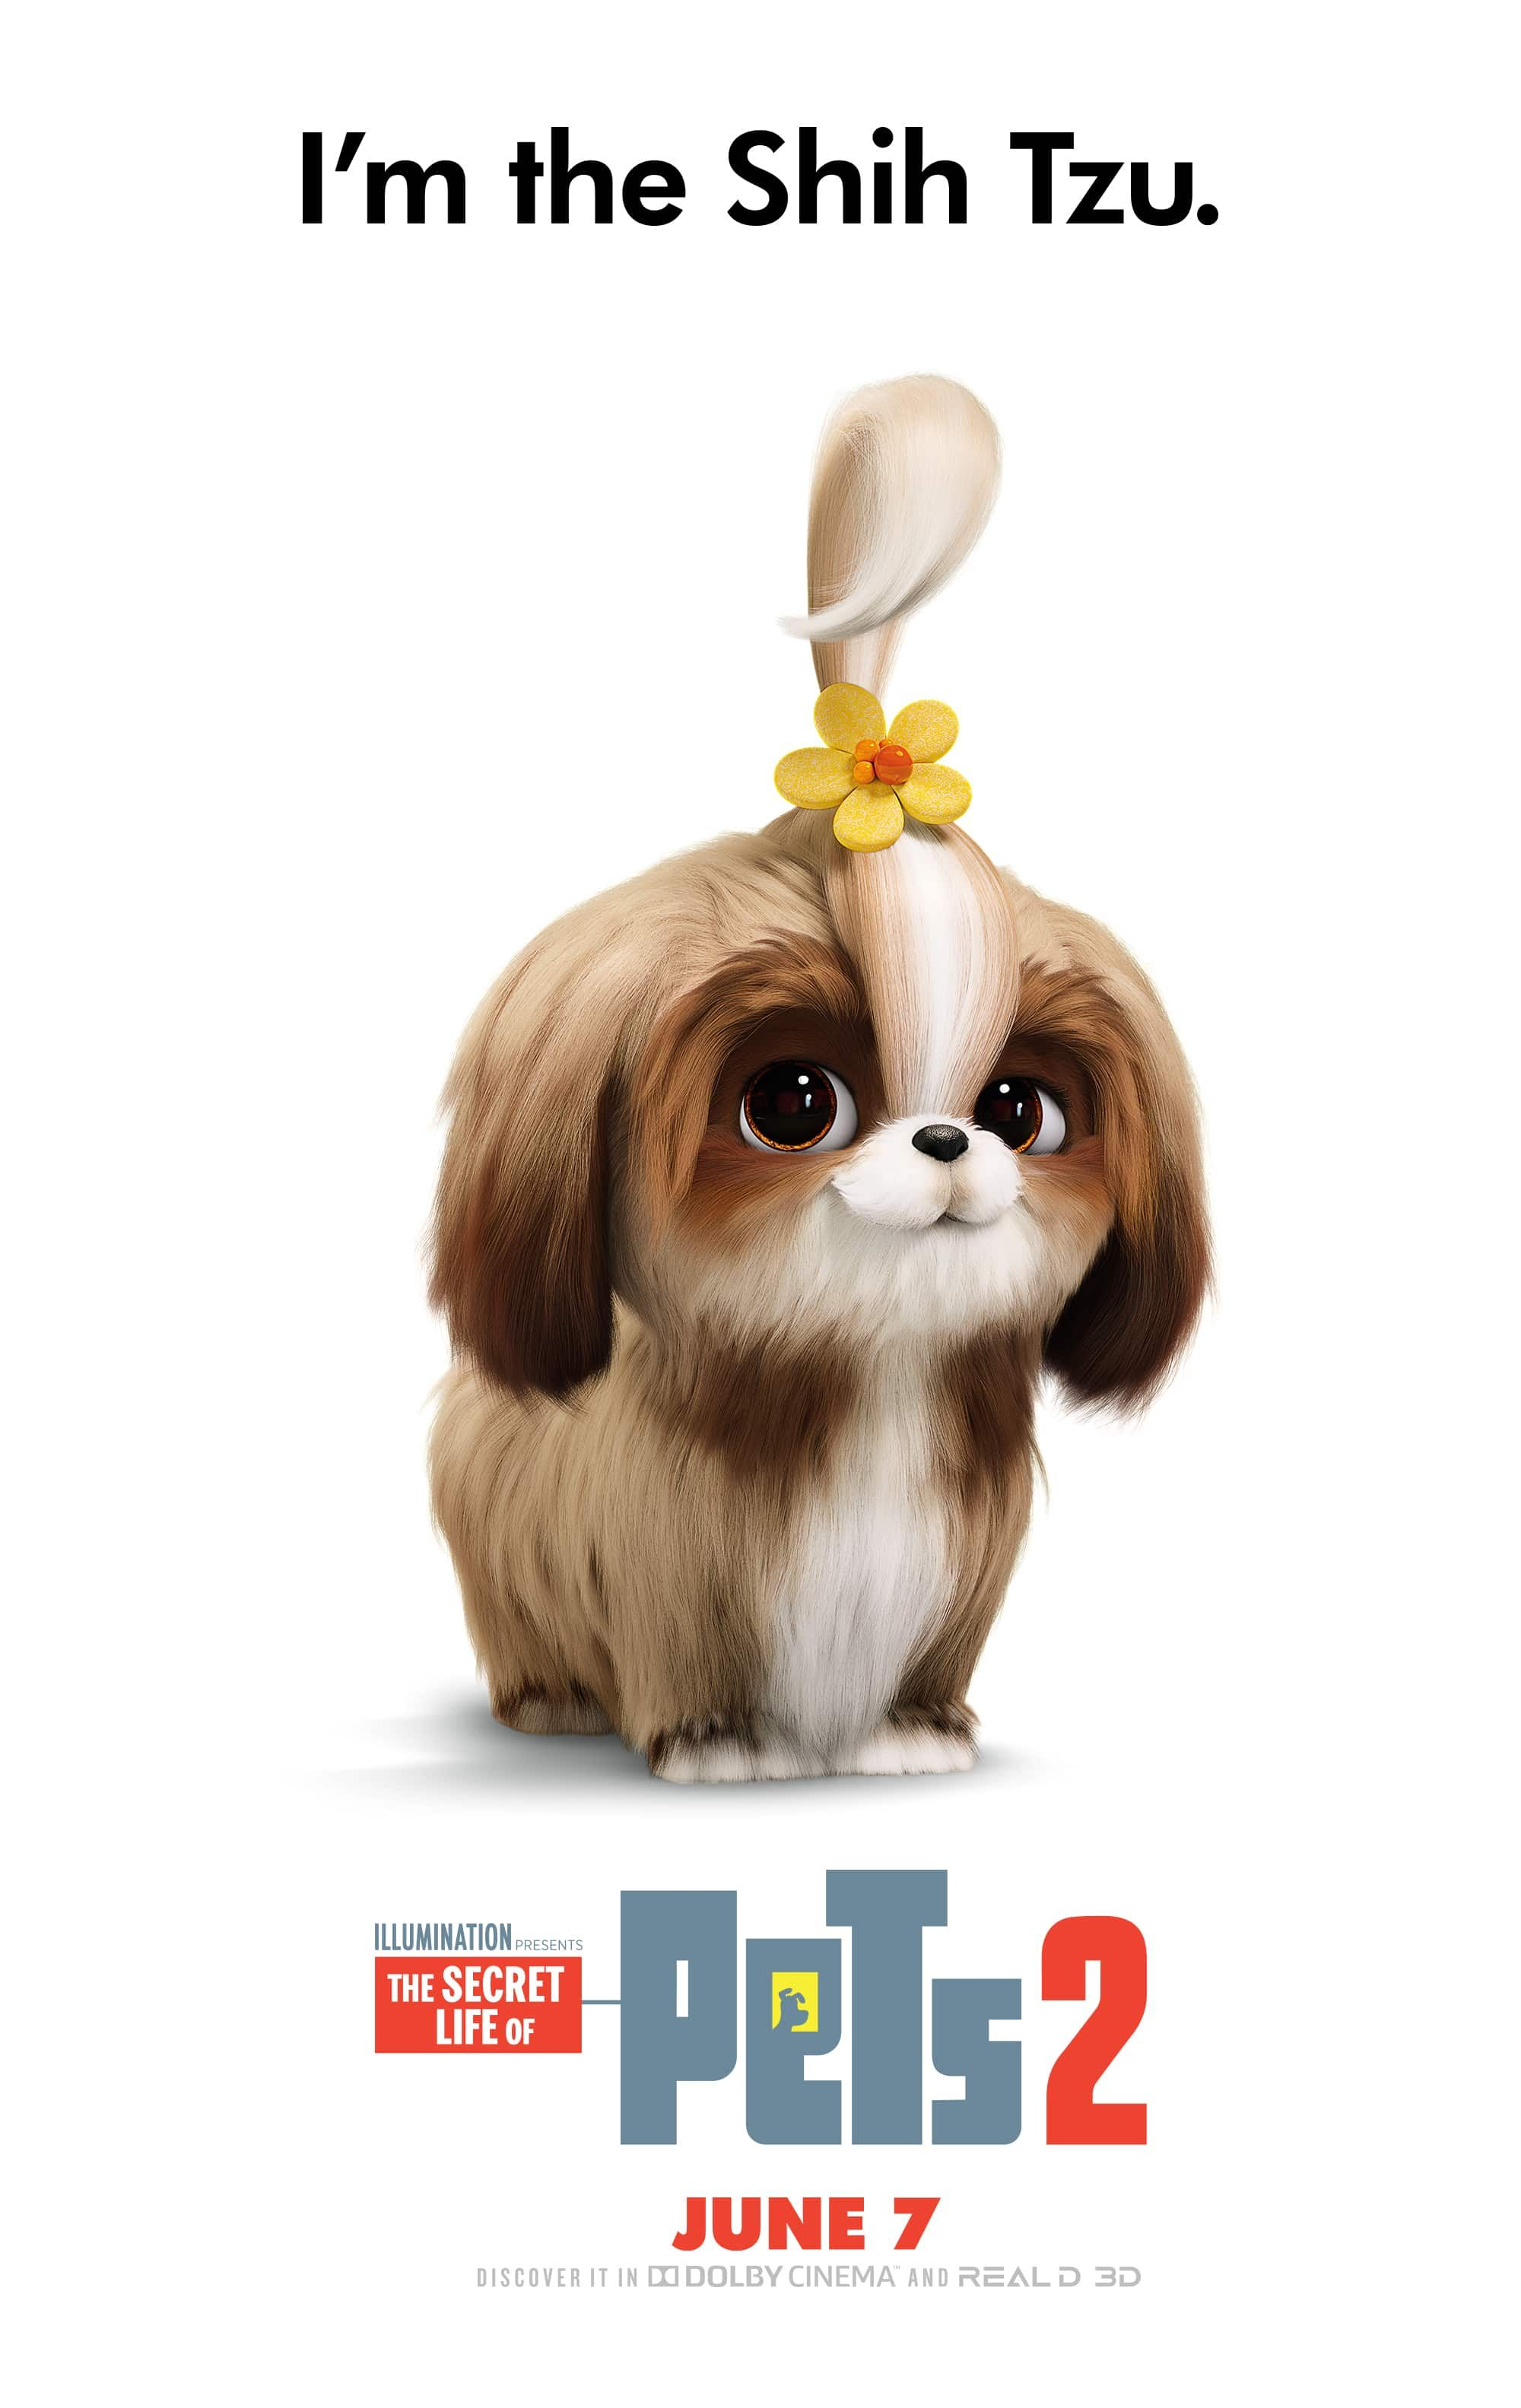 The Secret Life Of Pets 2 Movie Cast Pictures Own It On Digital Now 4k Ultra Hd Blu Ray Dvd August 27 Secret Life Of Pets Pets Secret Life